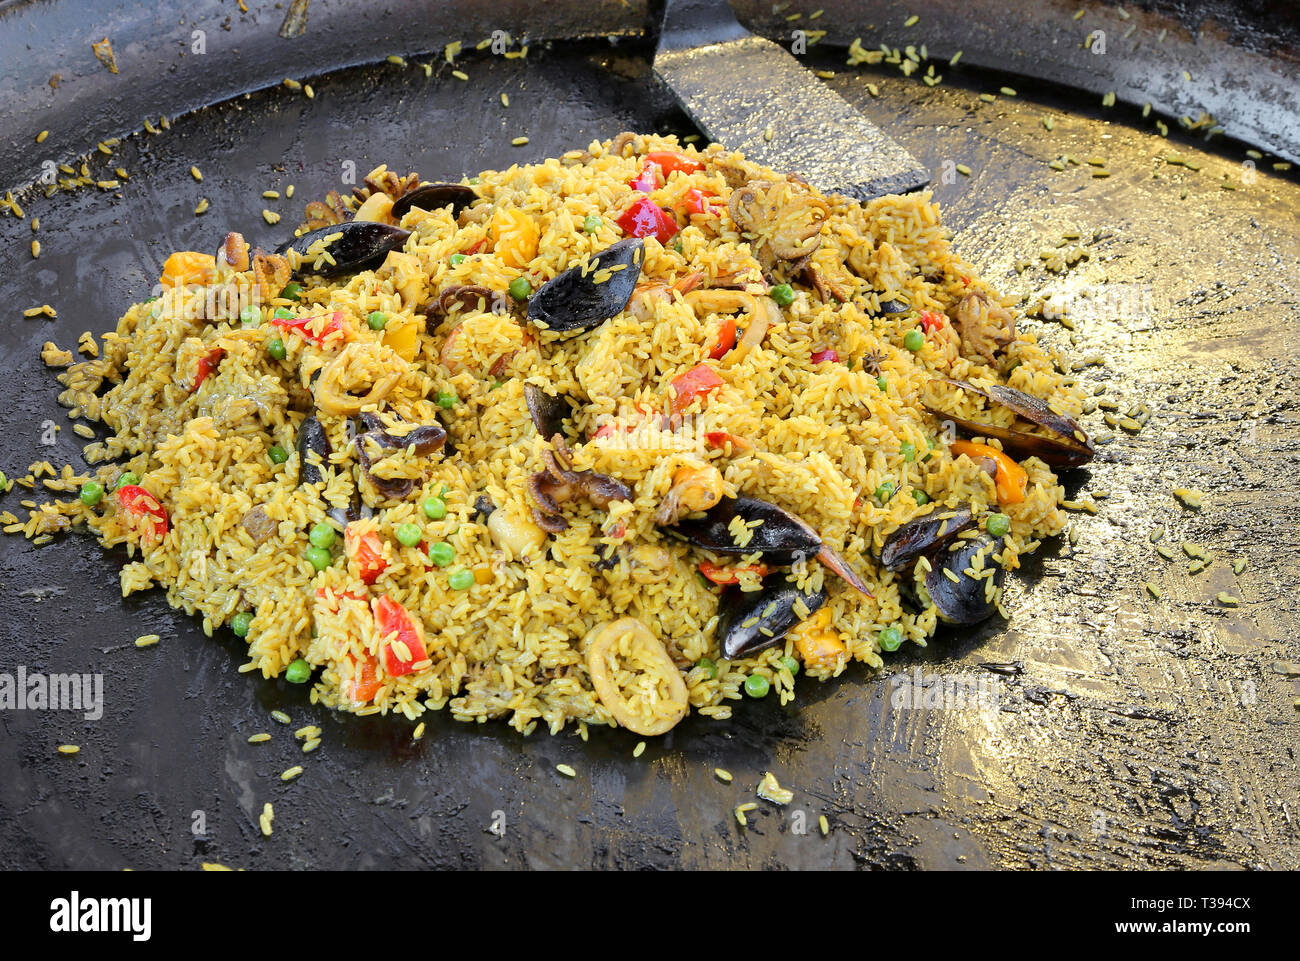 Spanish restaurant with tasty paella with rice and mussels and seafood on the large pan Stock Photo